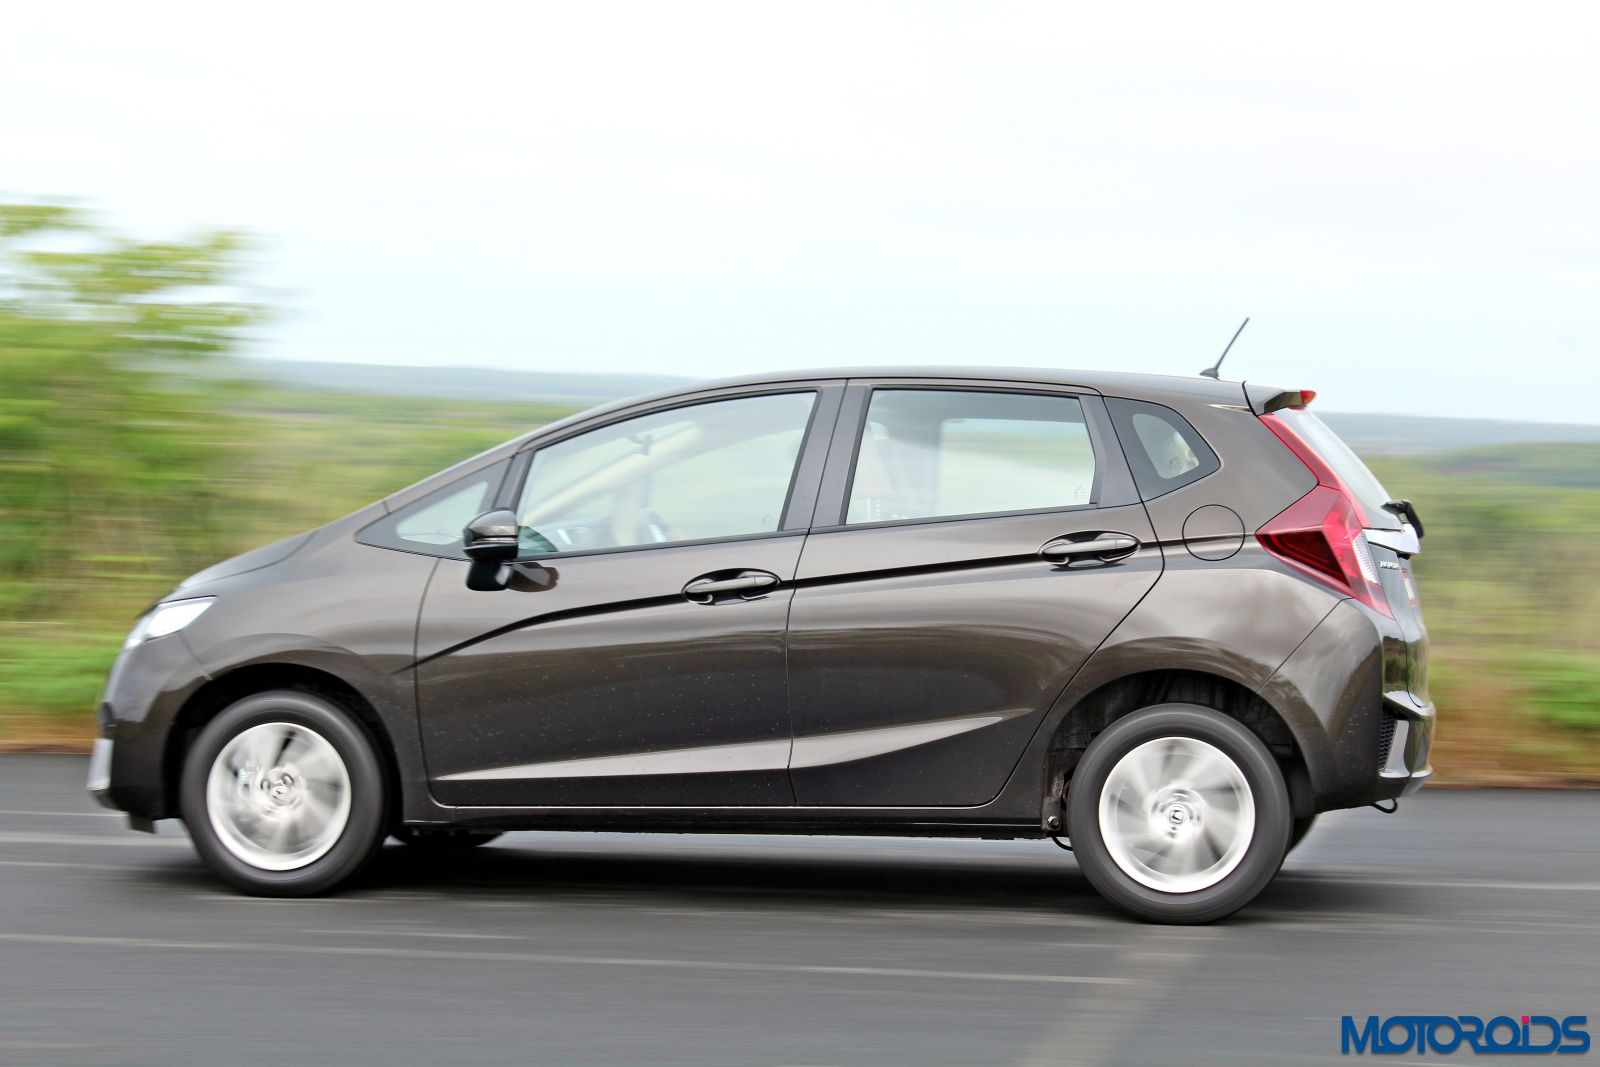 all new honda jazz launched in india starts from inr lakh ex delhi motoroids. Black Bedroom Furniture Sets. Home Design Ideas